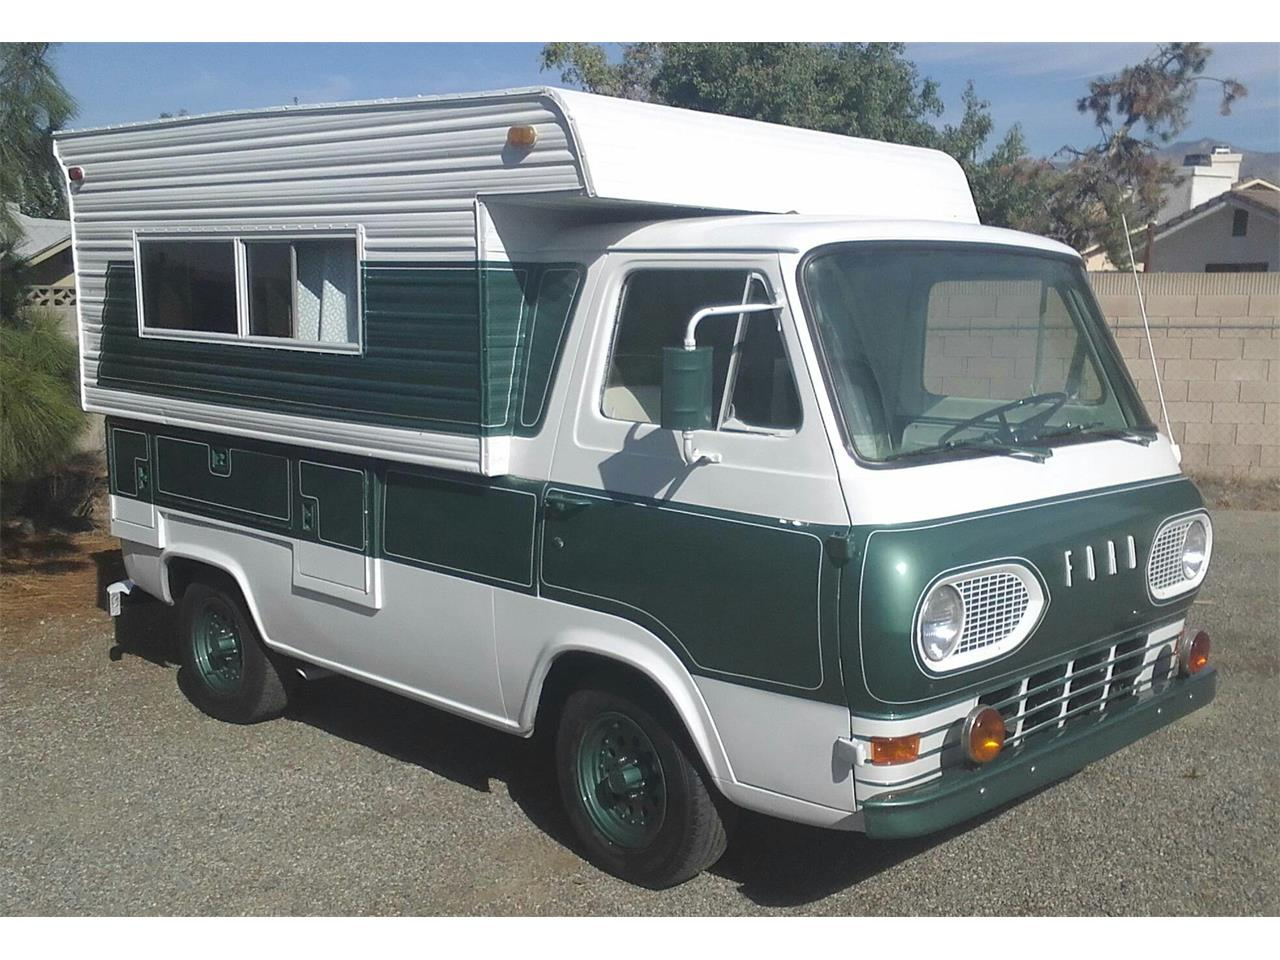 Large picture of 64 econoline truck camper k8jr